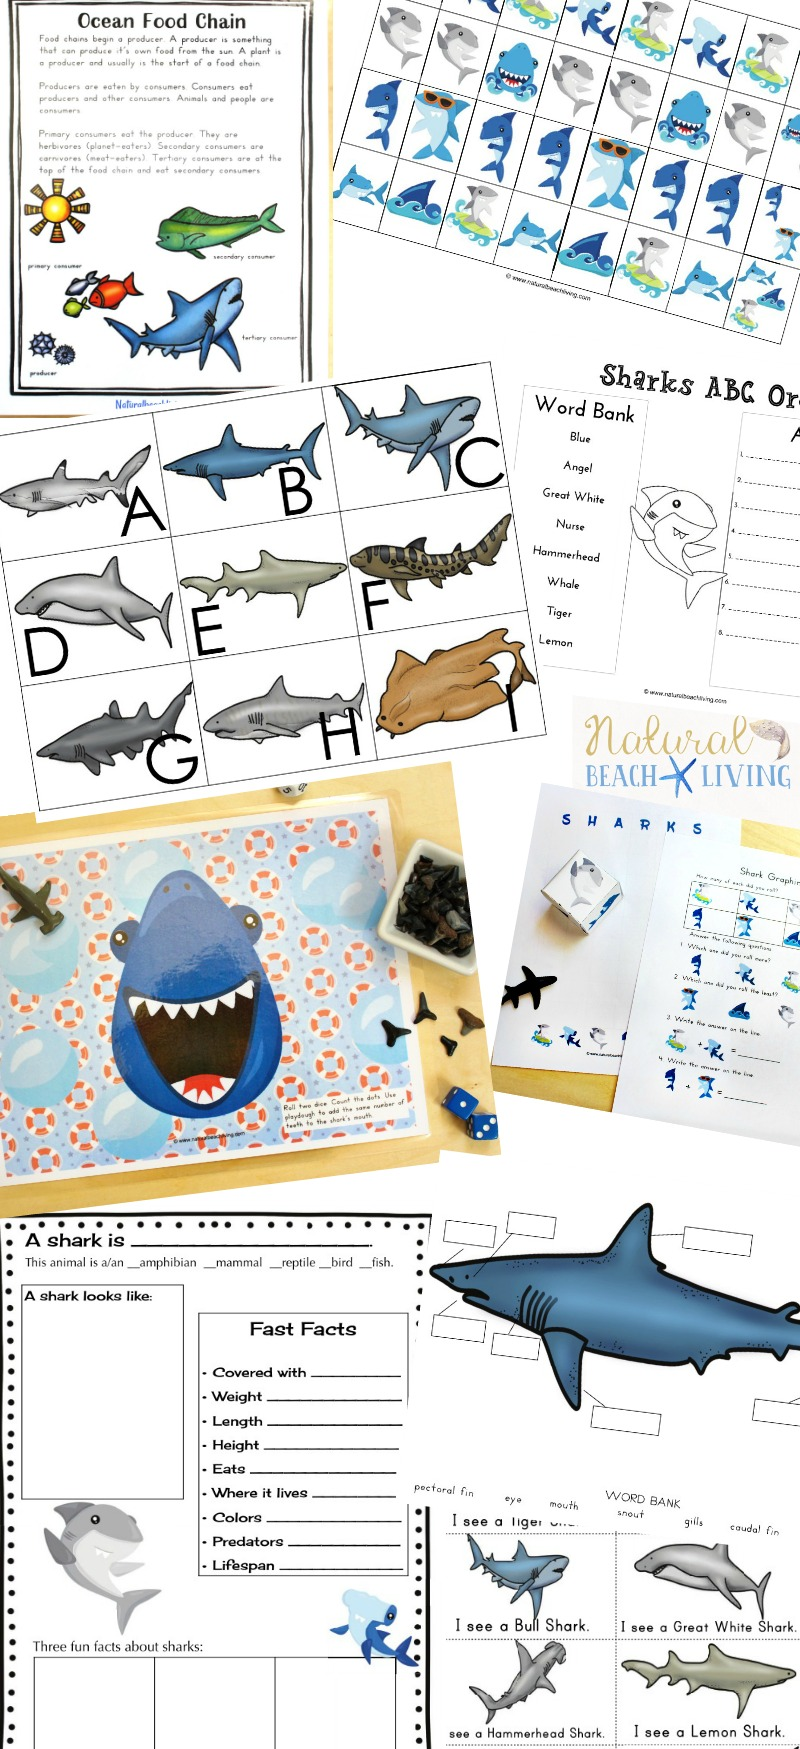 The Best Shark Printable Activities for Kids, Get ready for Shark Week with a Shark Unit Study and Shark Lesson Plans, These Shark Week Ideas have Alphabet Activities, Shark Facts and Information Printables, shark graphing and shark games. Plus your Shark printables and Writing Prompts